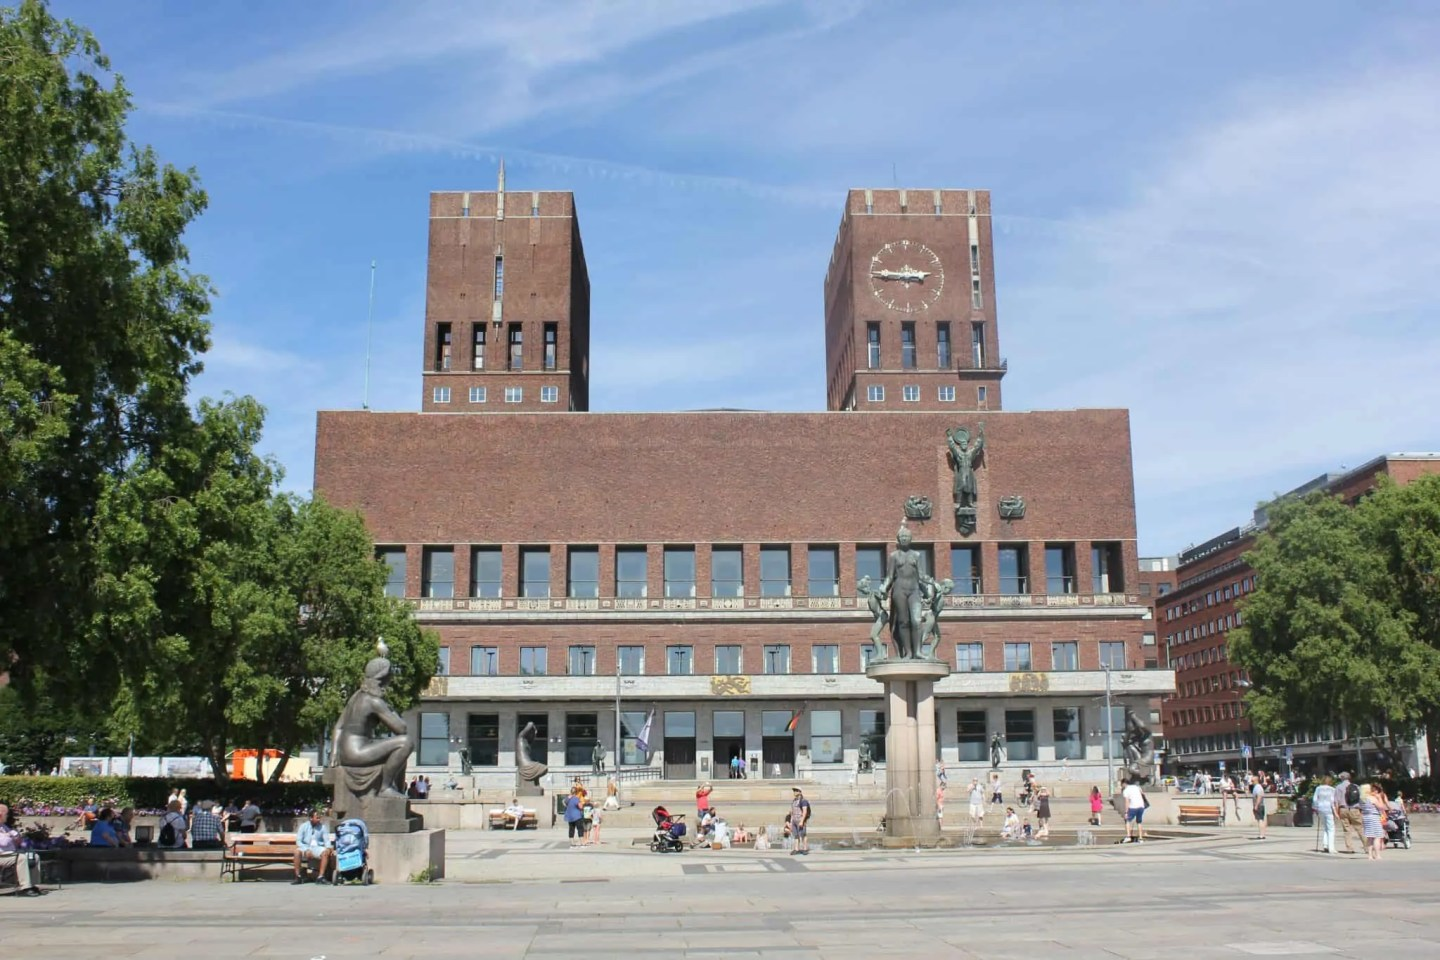 best time to visit Oslo, things to do in Oslo, free things to do in Oslo, fun things to do in Oslo, Oslo city hall, best museums in Oslo